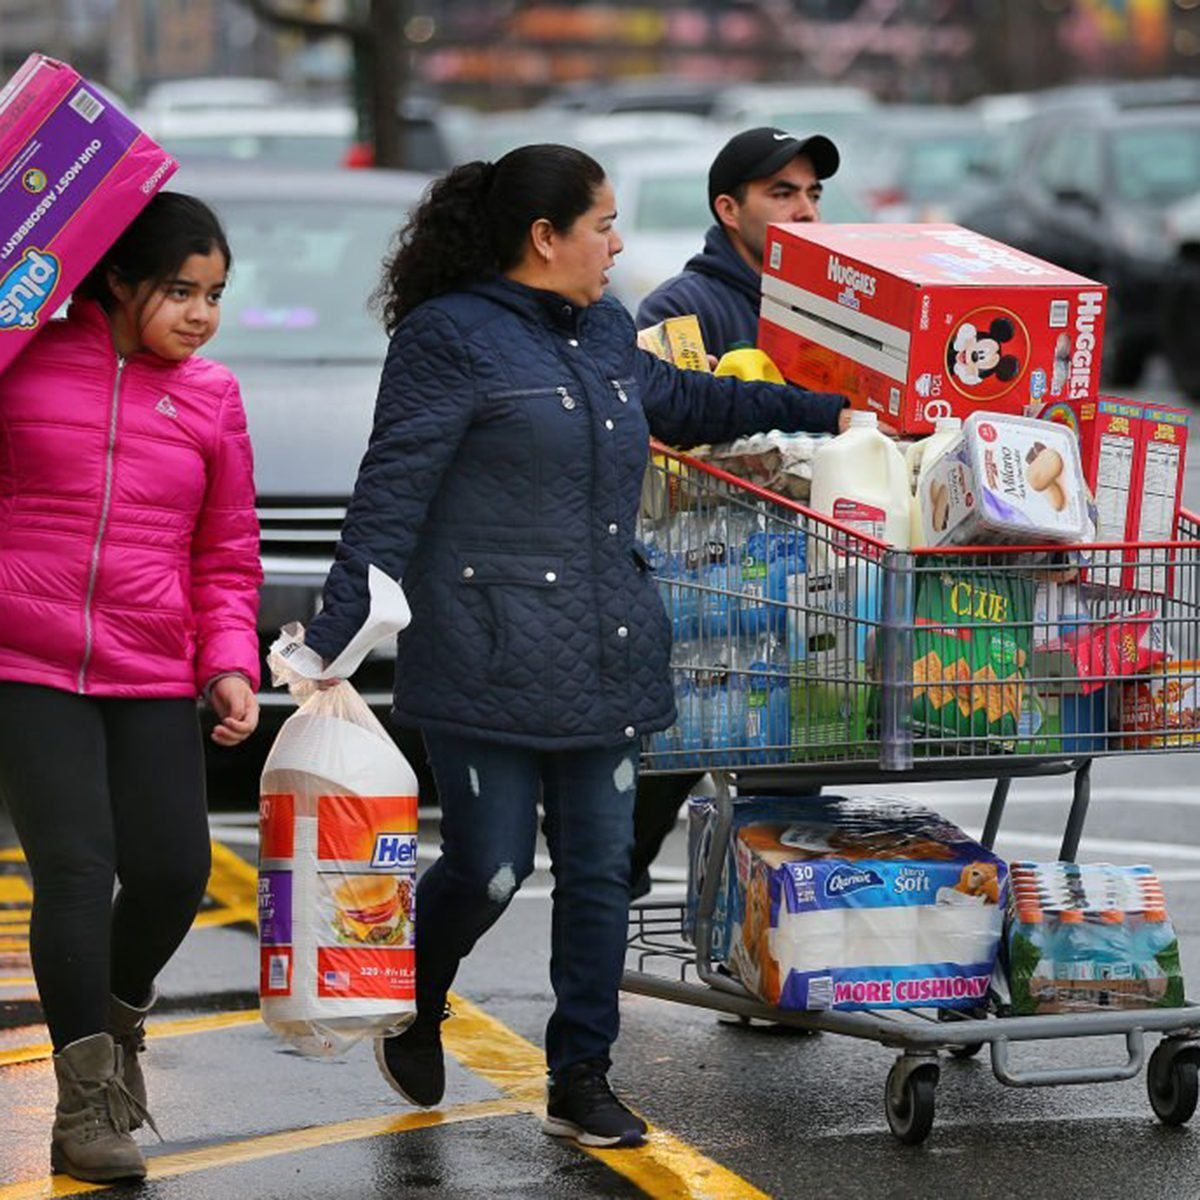 Family carrying items out of a Costco together